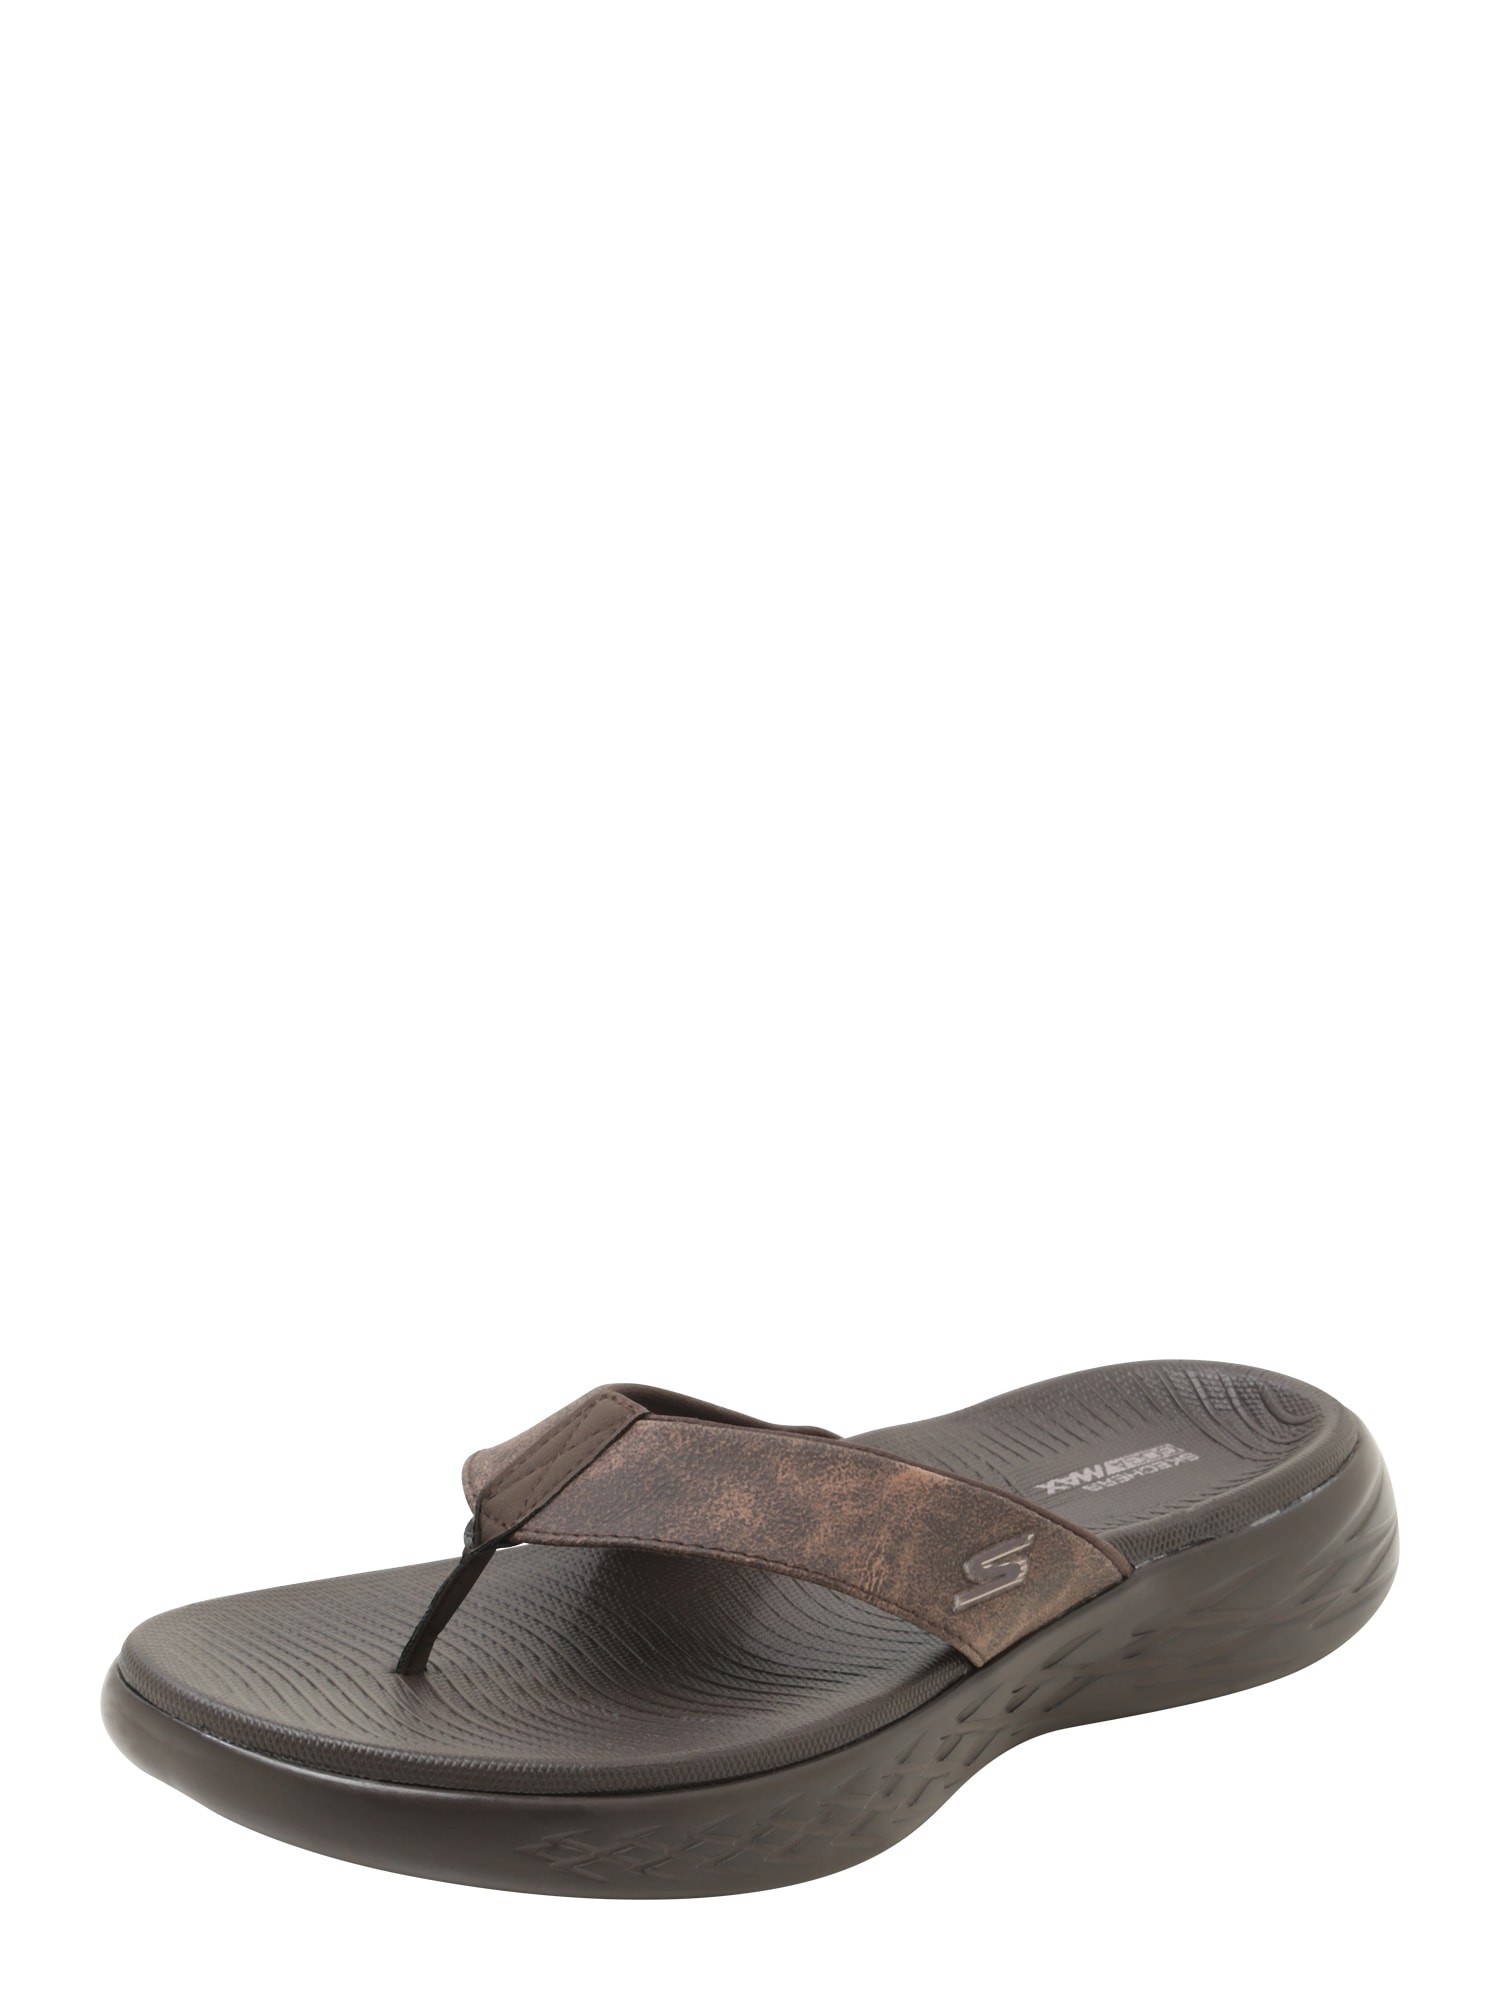 Žabky 3 Point Perform Tex Sandal Molded Footbed hnědá SKECHERS